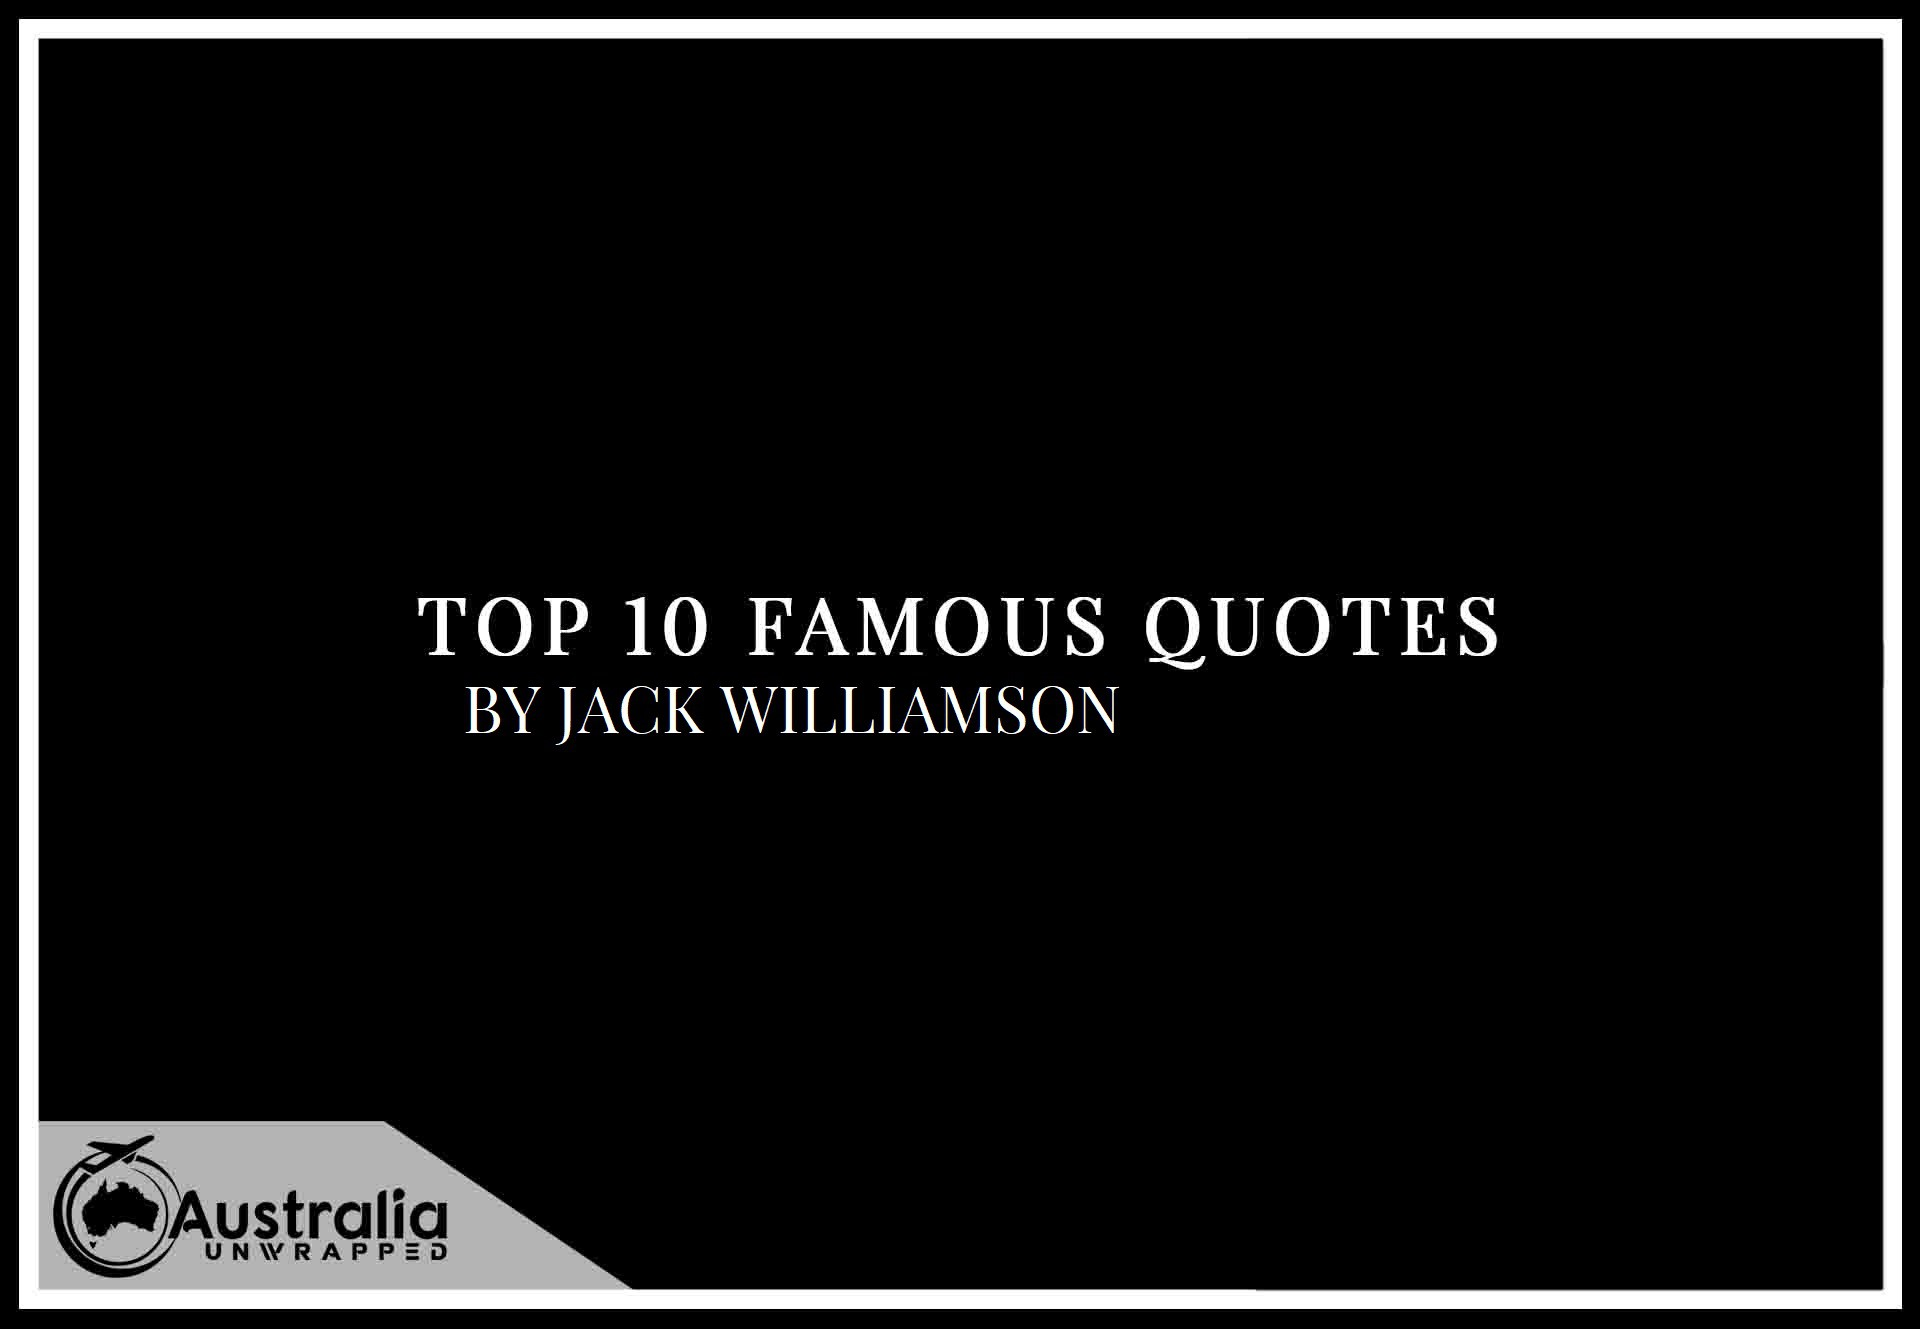 Top 10 Famous Quotes by Author Jack Williamson